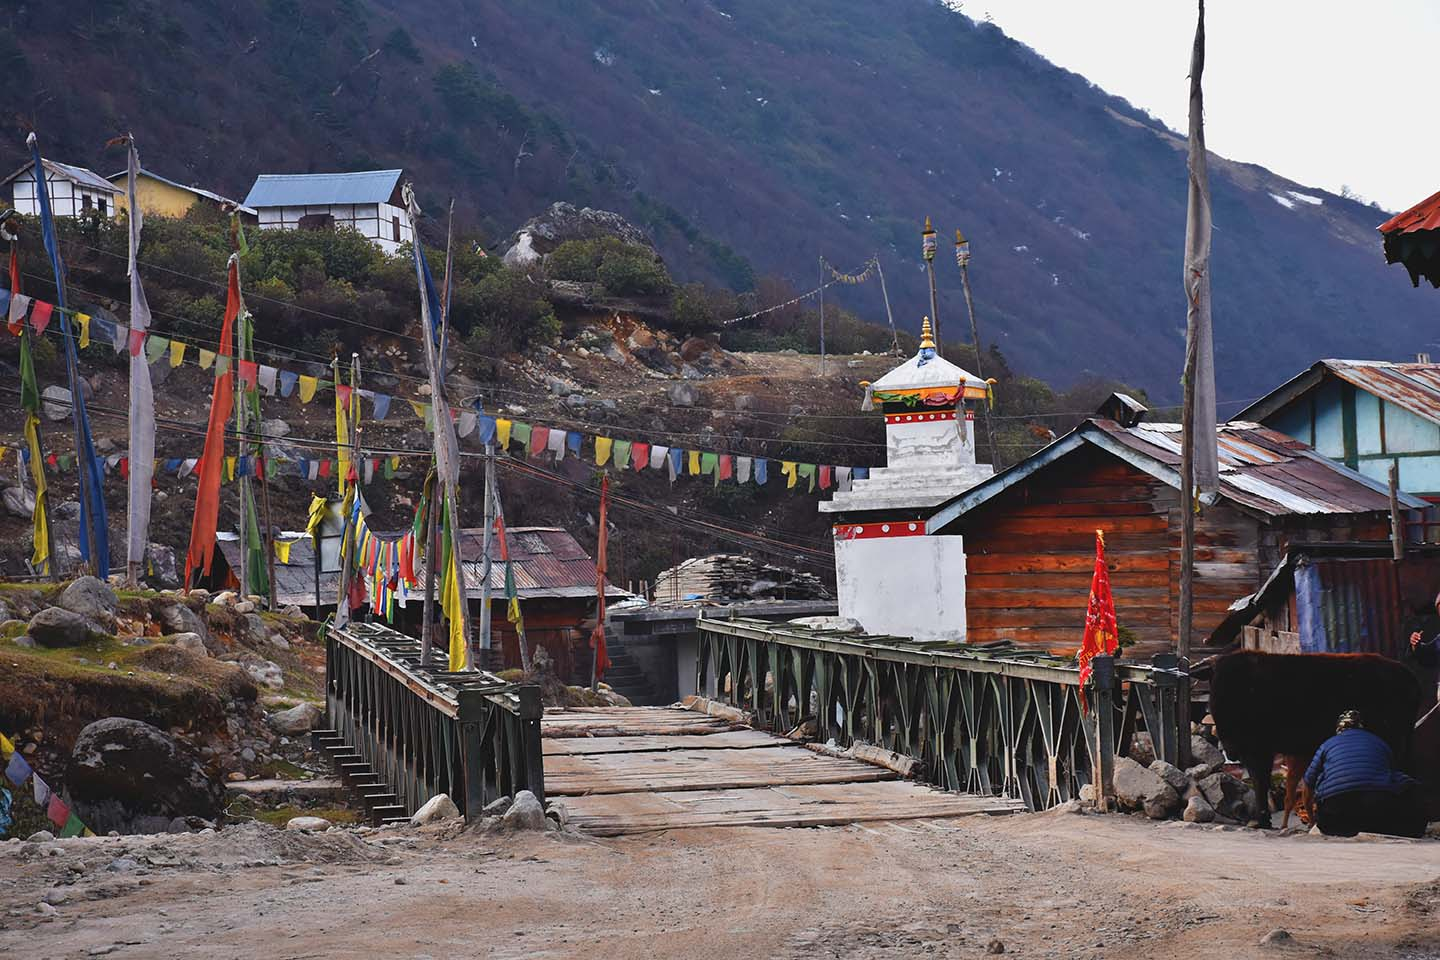 Chorten and bridge at Thangu North Sikkim